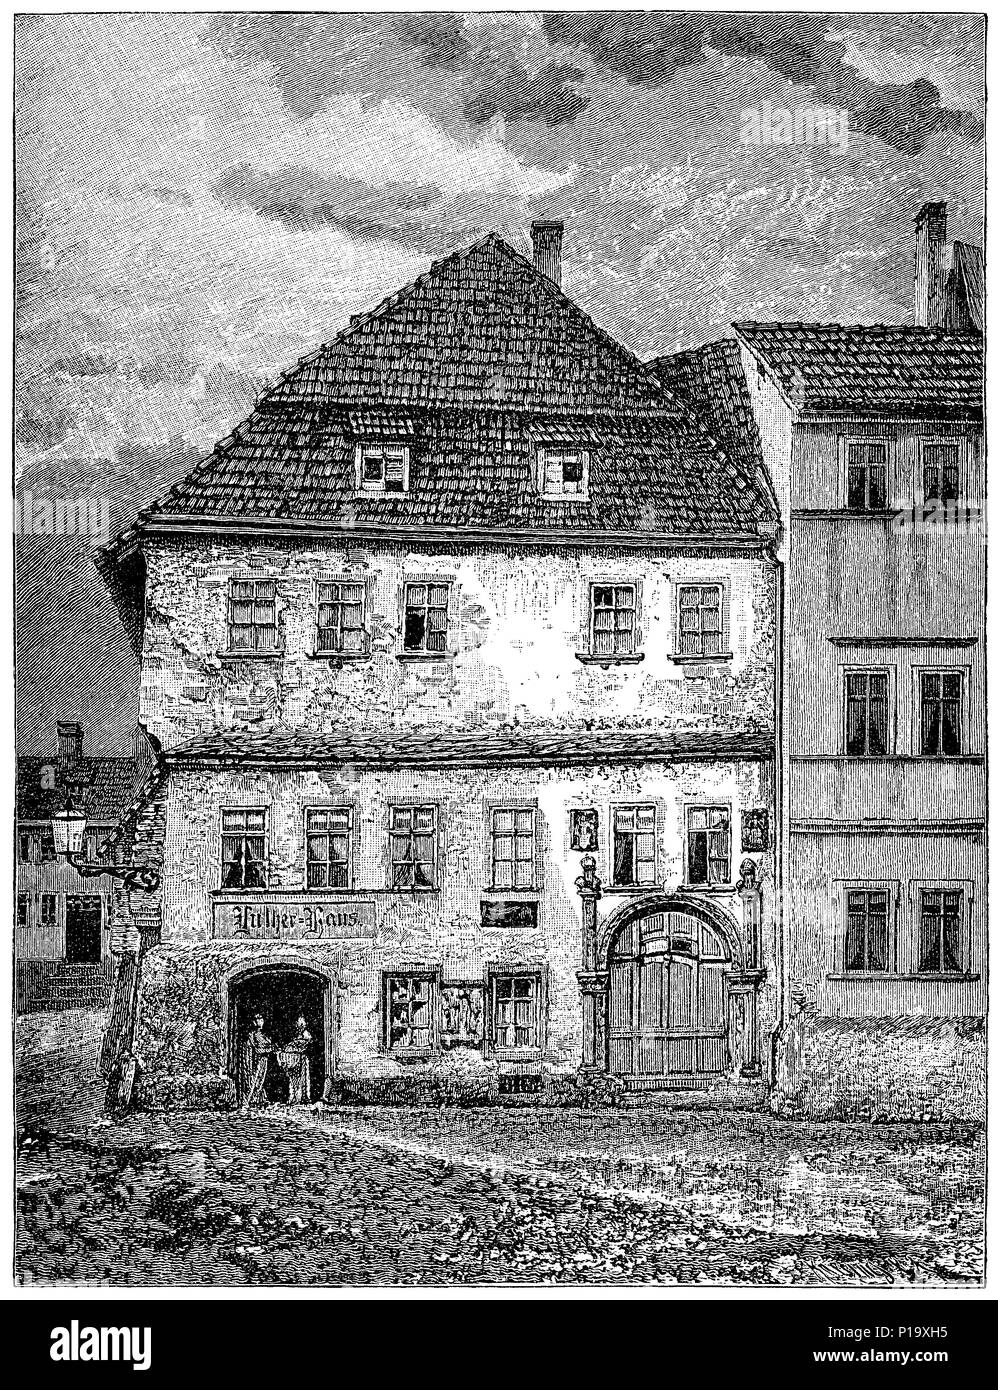 1883 engraving of the Lutherhaus in Eisenach, Germany. - Stock Image